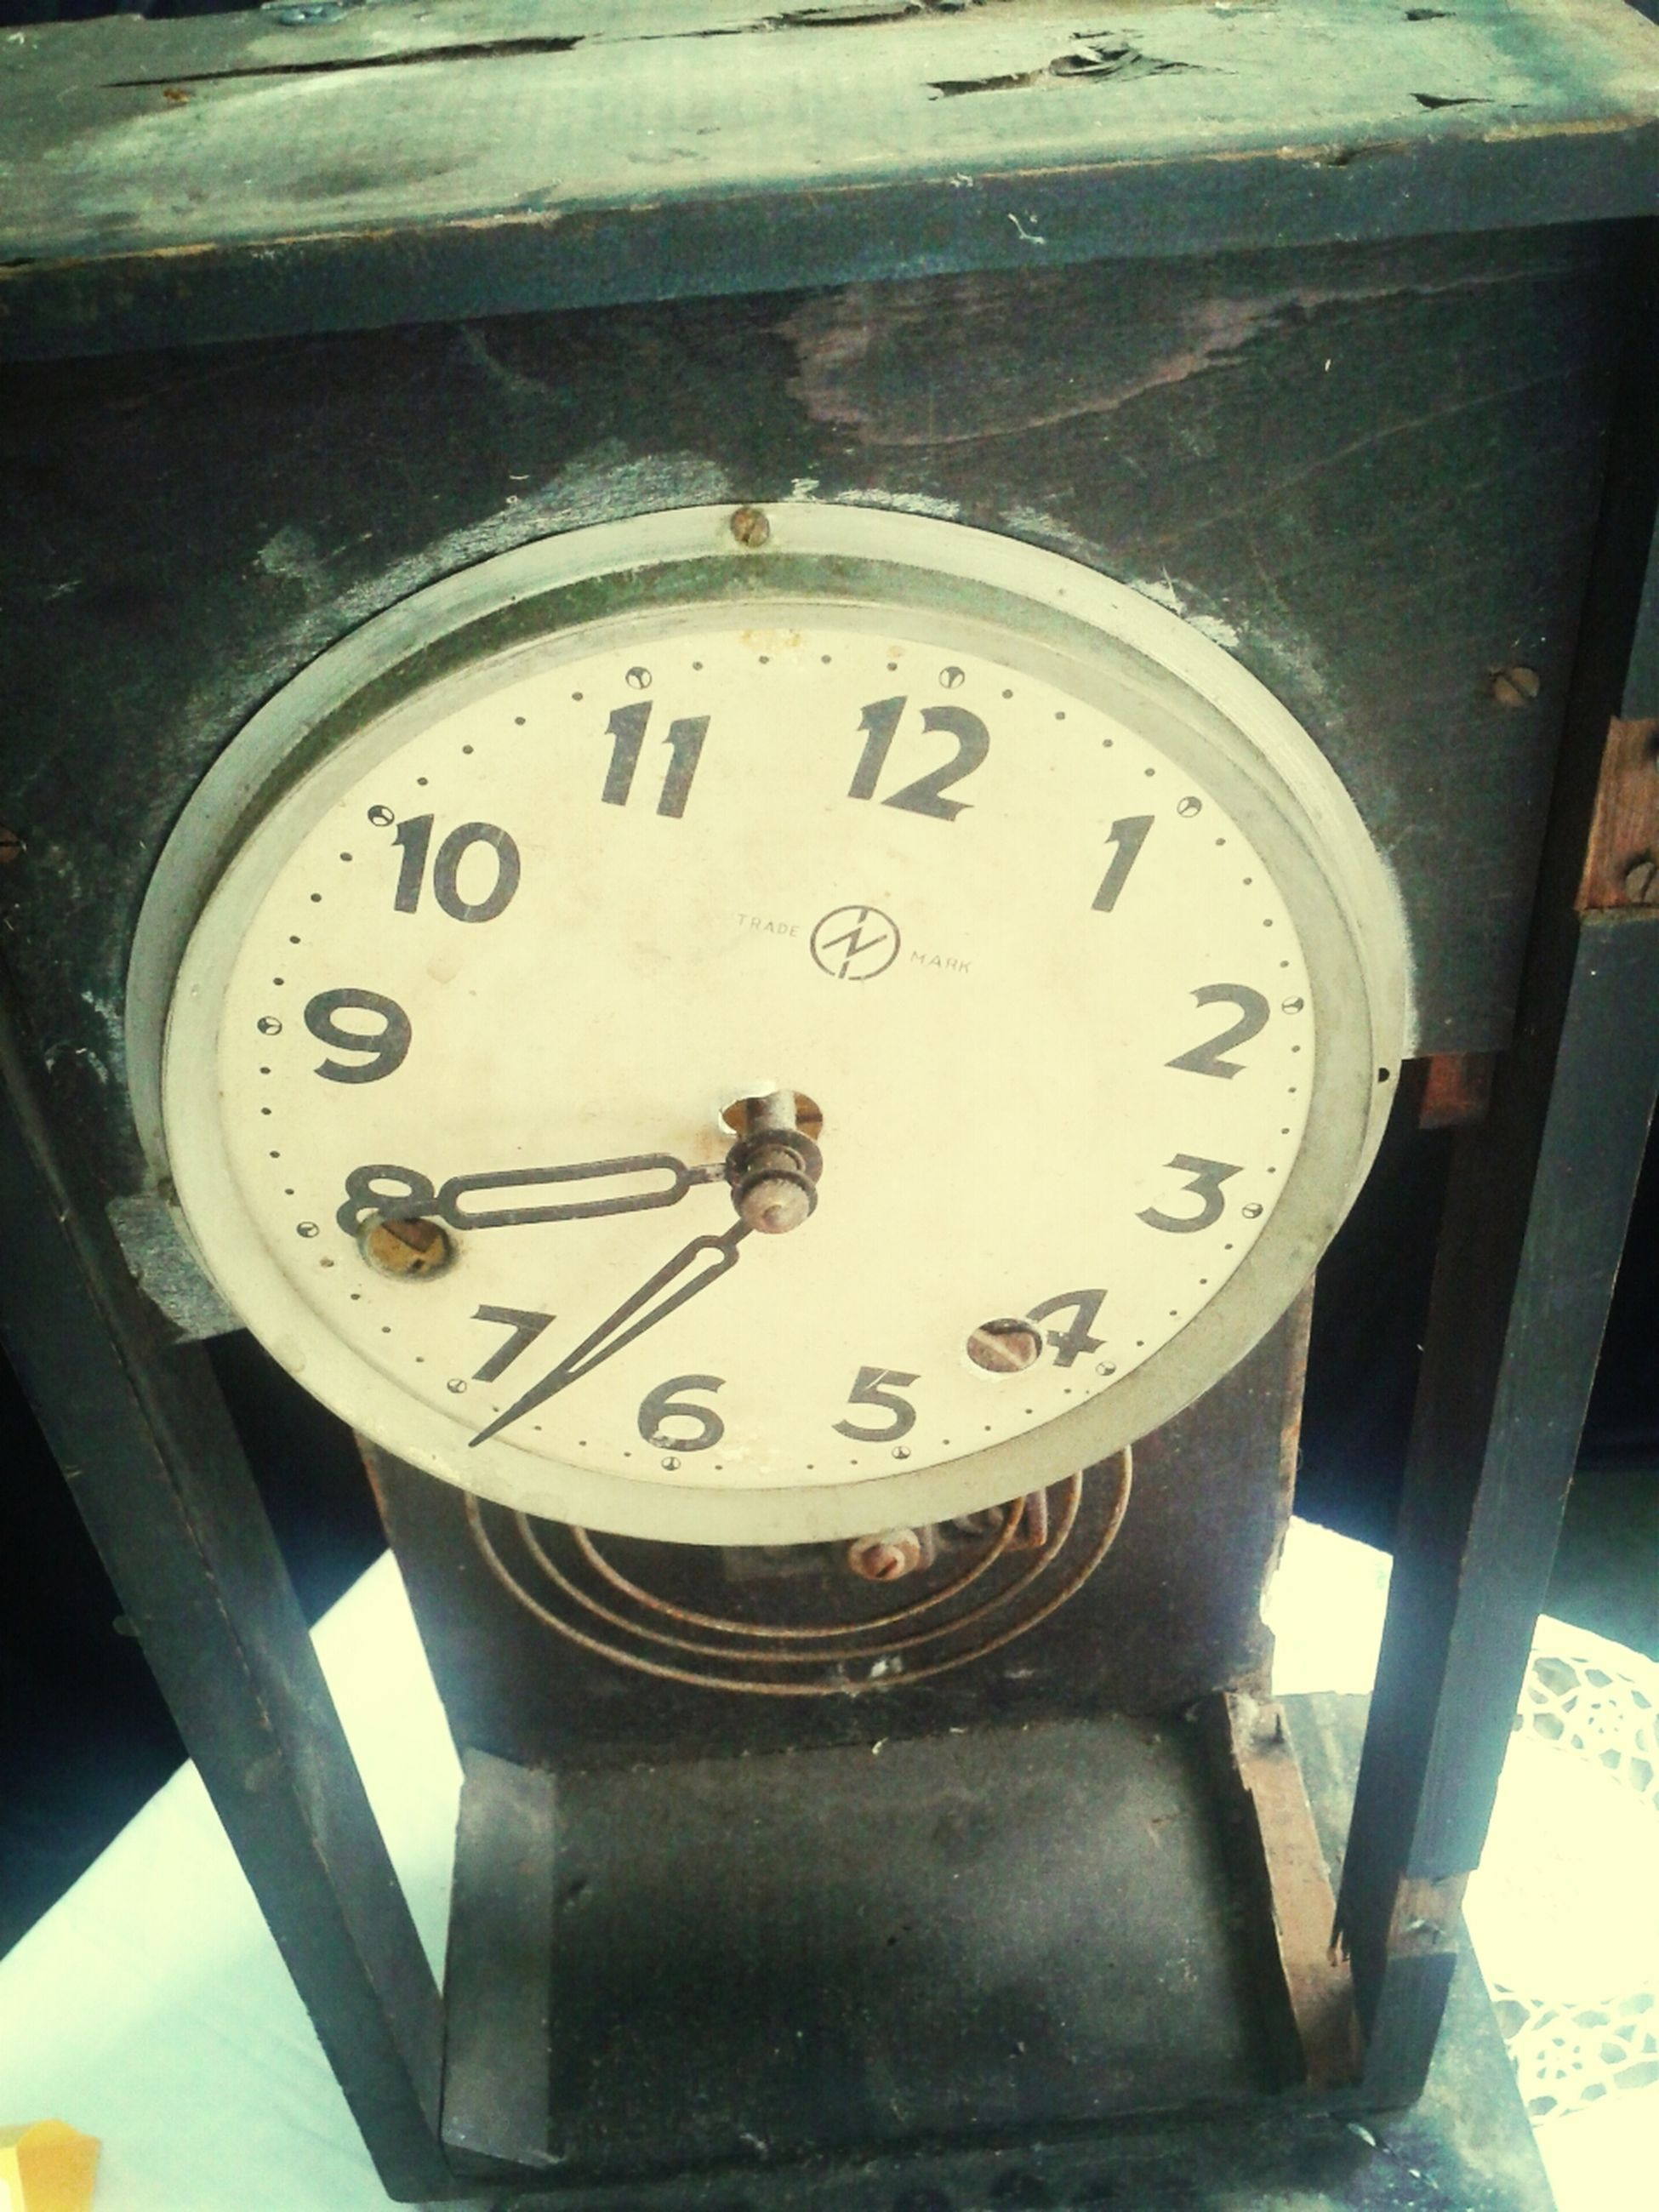 clock, time, text, number, communication, close-up, western script, indoors, metal, old-fashioned, low angle view, clock face, accuracy, minute hand, instrument of measurement, old, technology, transportation, no people, wall clock